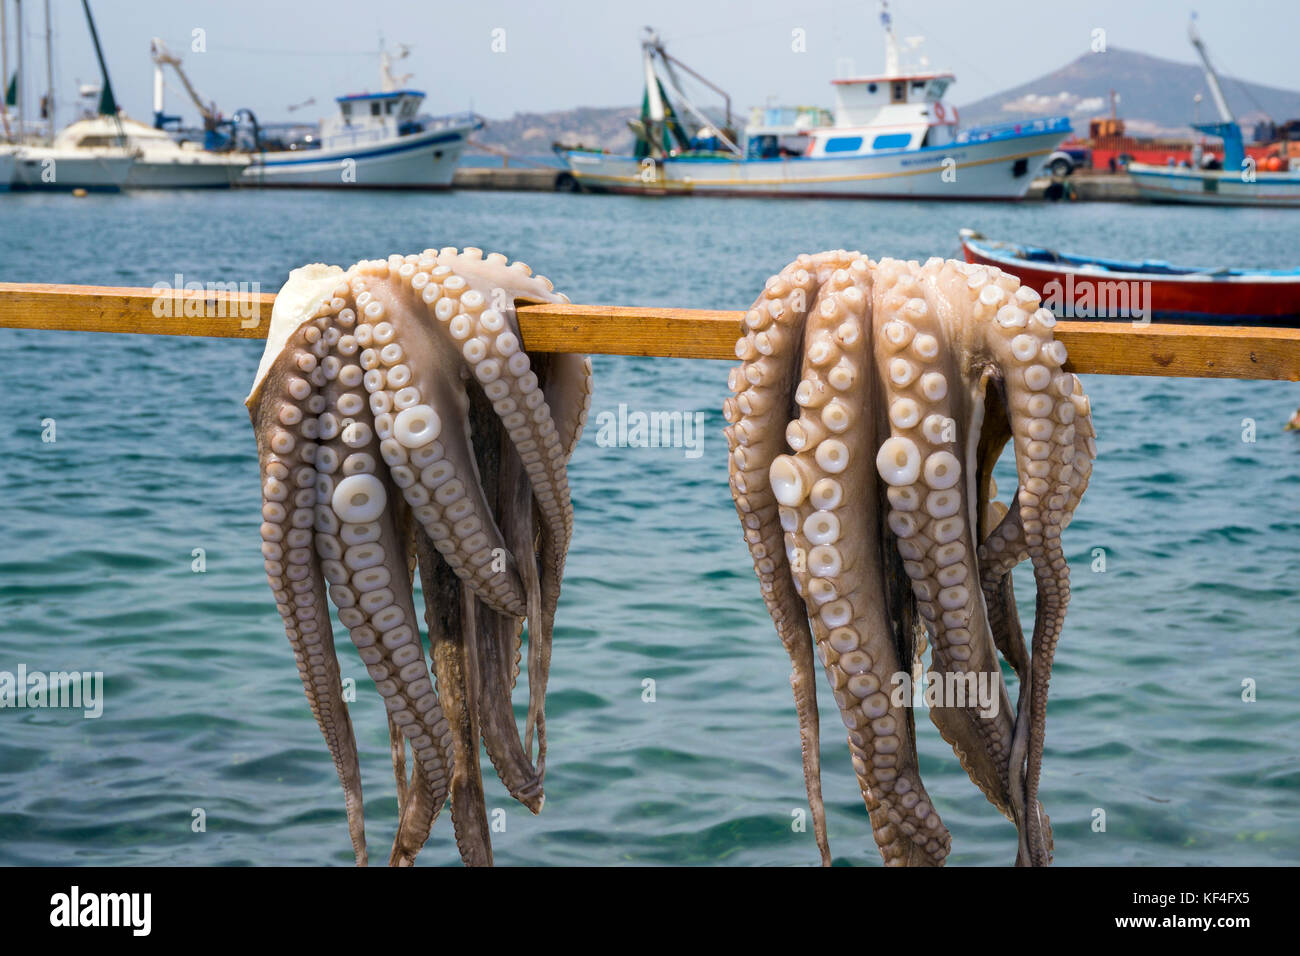 Octopus hanging for drying at harbour of Naxos-town, Naxos, Cyclades, Aegean, Greece - Stock Image